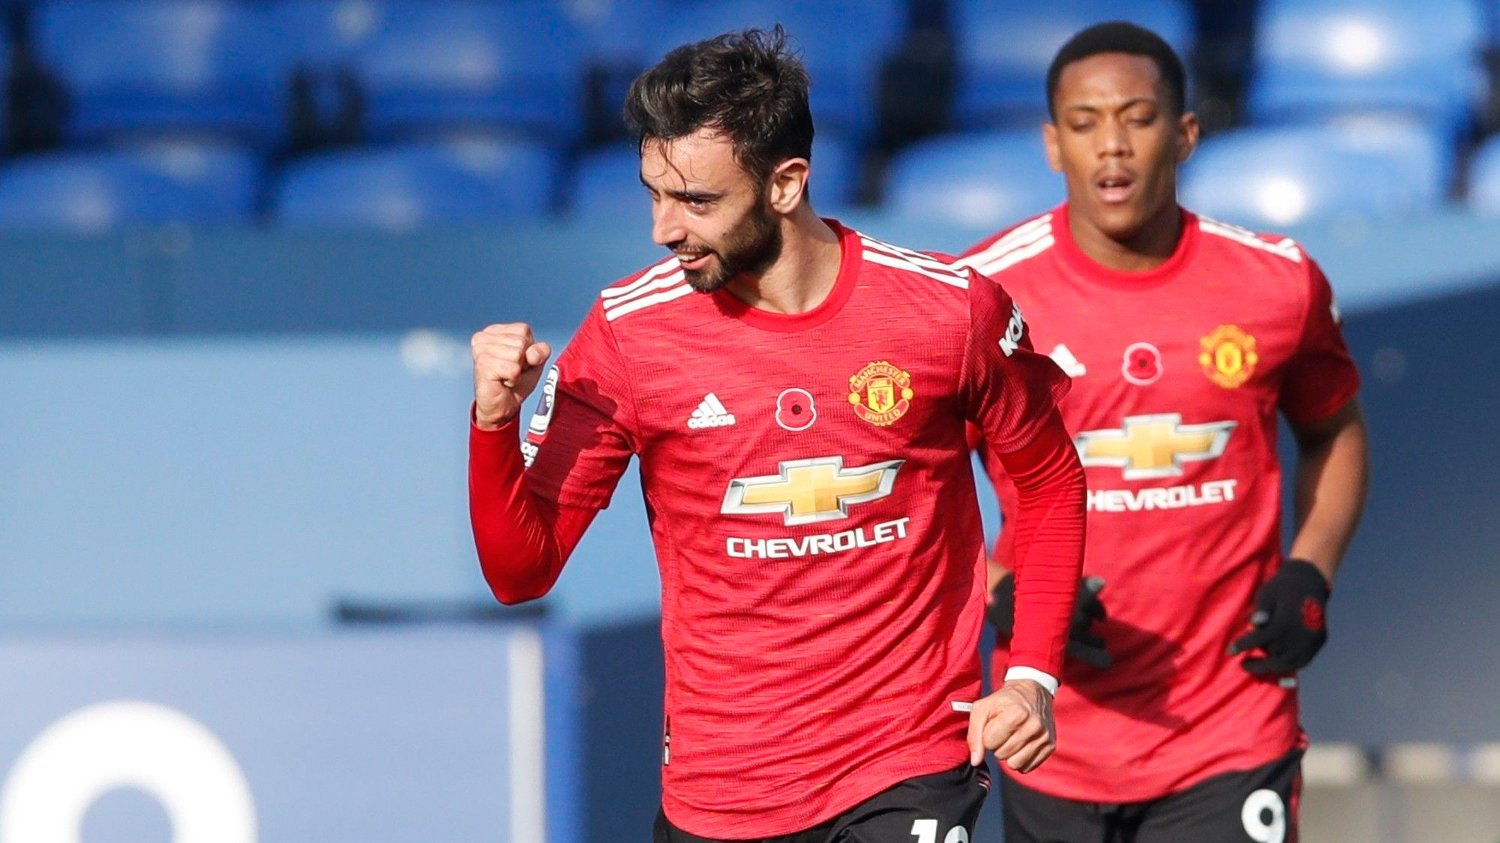 Manchester United's Bruno Fernandes celebrates after scoring his side's opening goal during the English Premier League soccer match between Everton and Manchester United at the Goodison Park stadium in Liverpool, England, Saturday, Nov. 7, 2020.